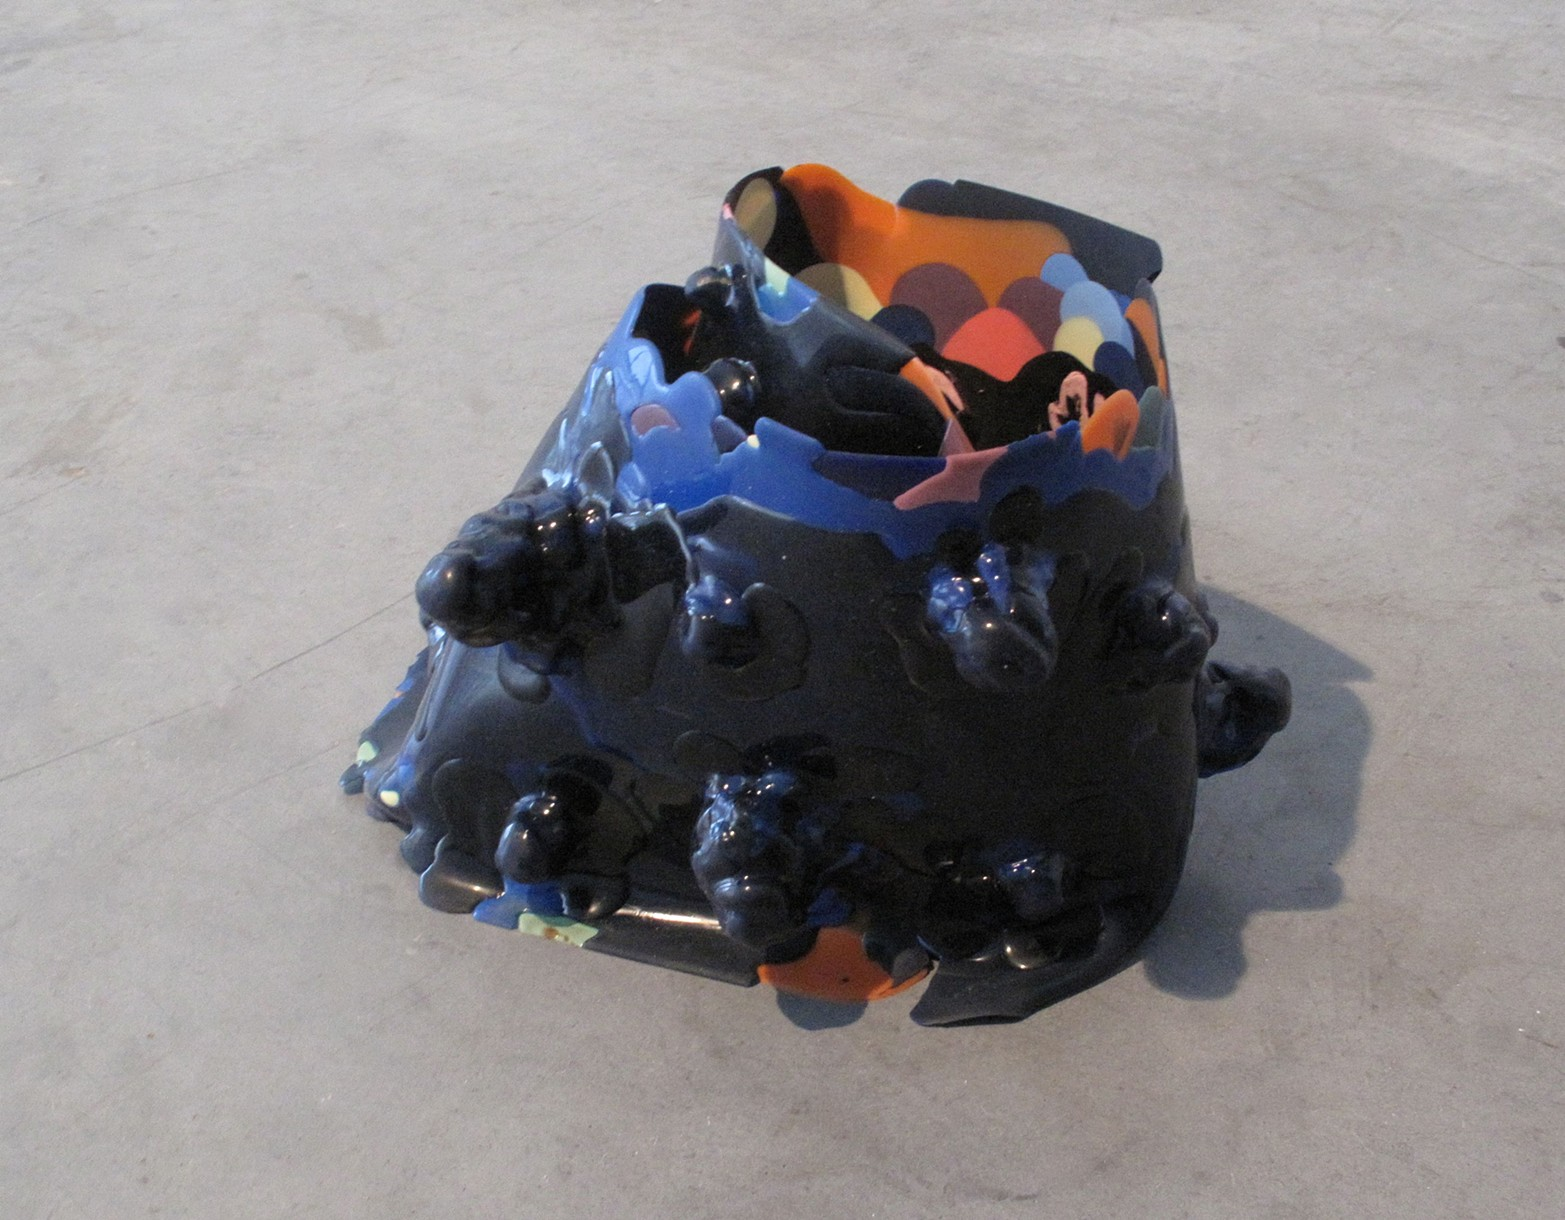 Untitled (to spread, to catch, to recoil), 2012